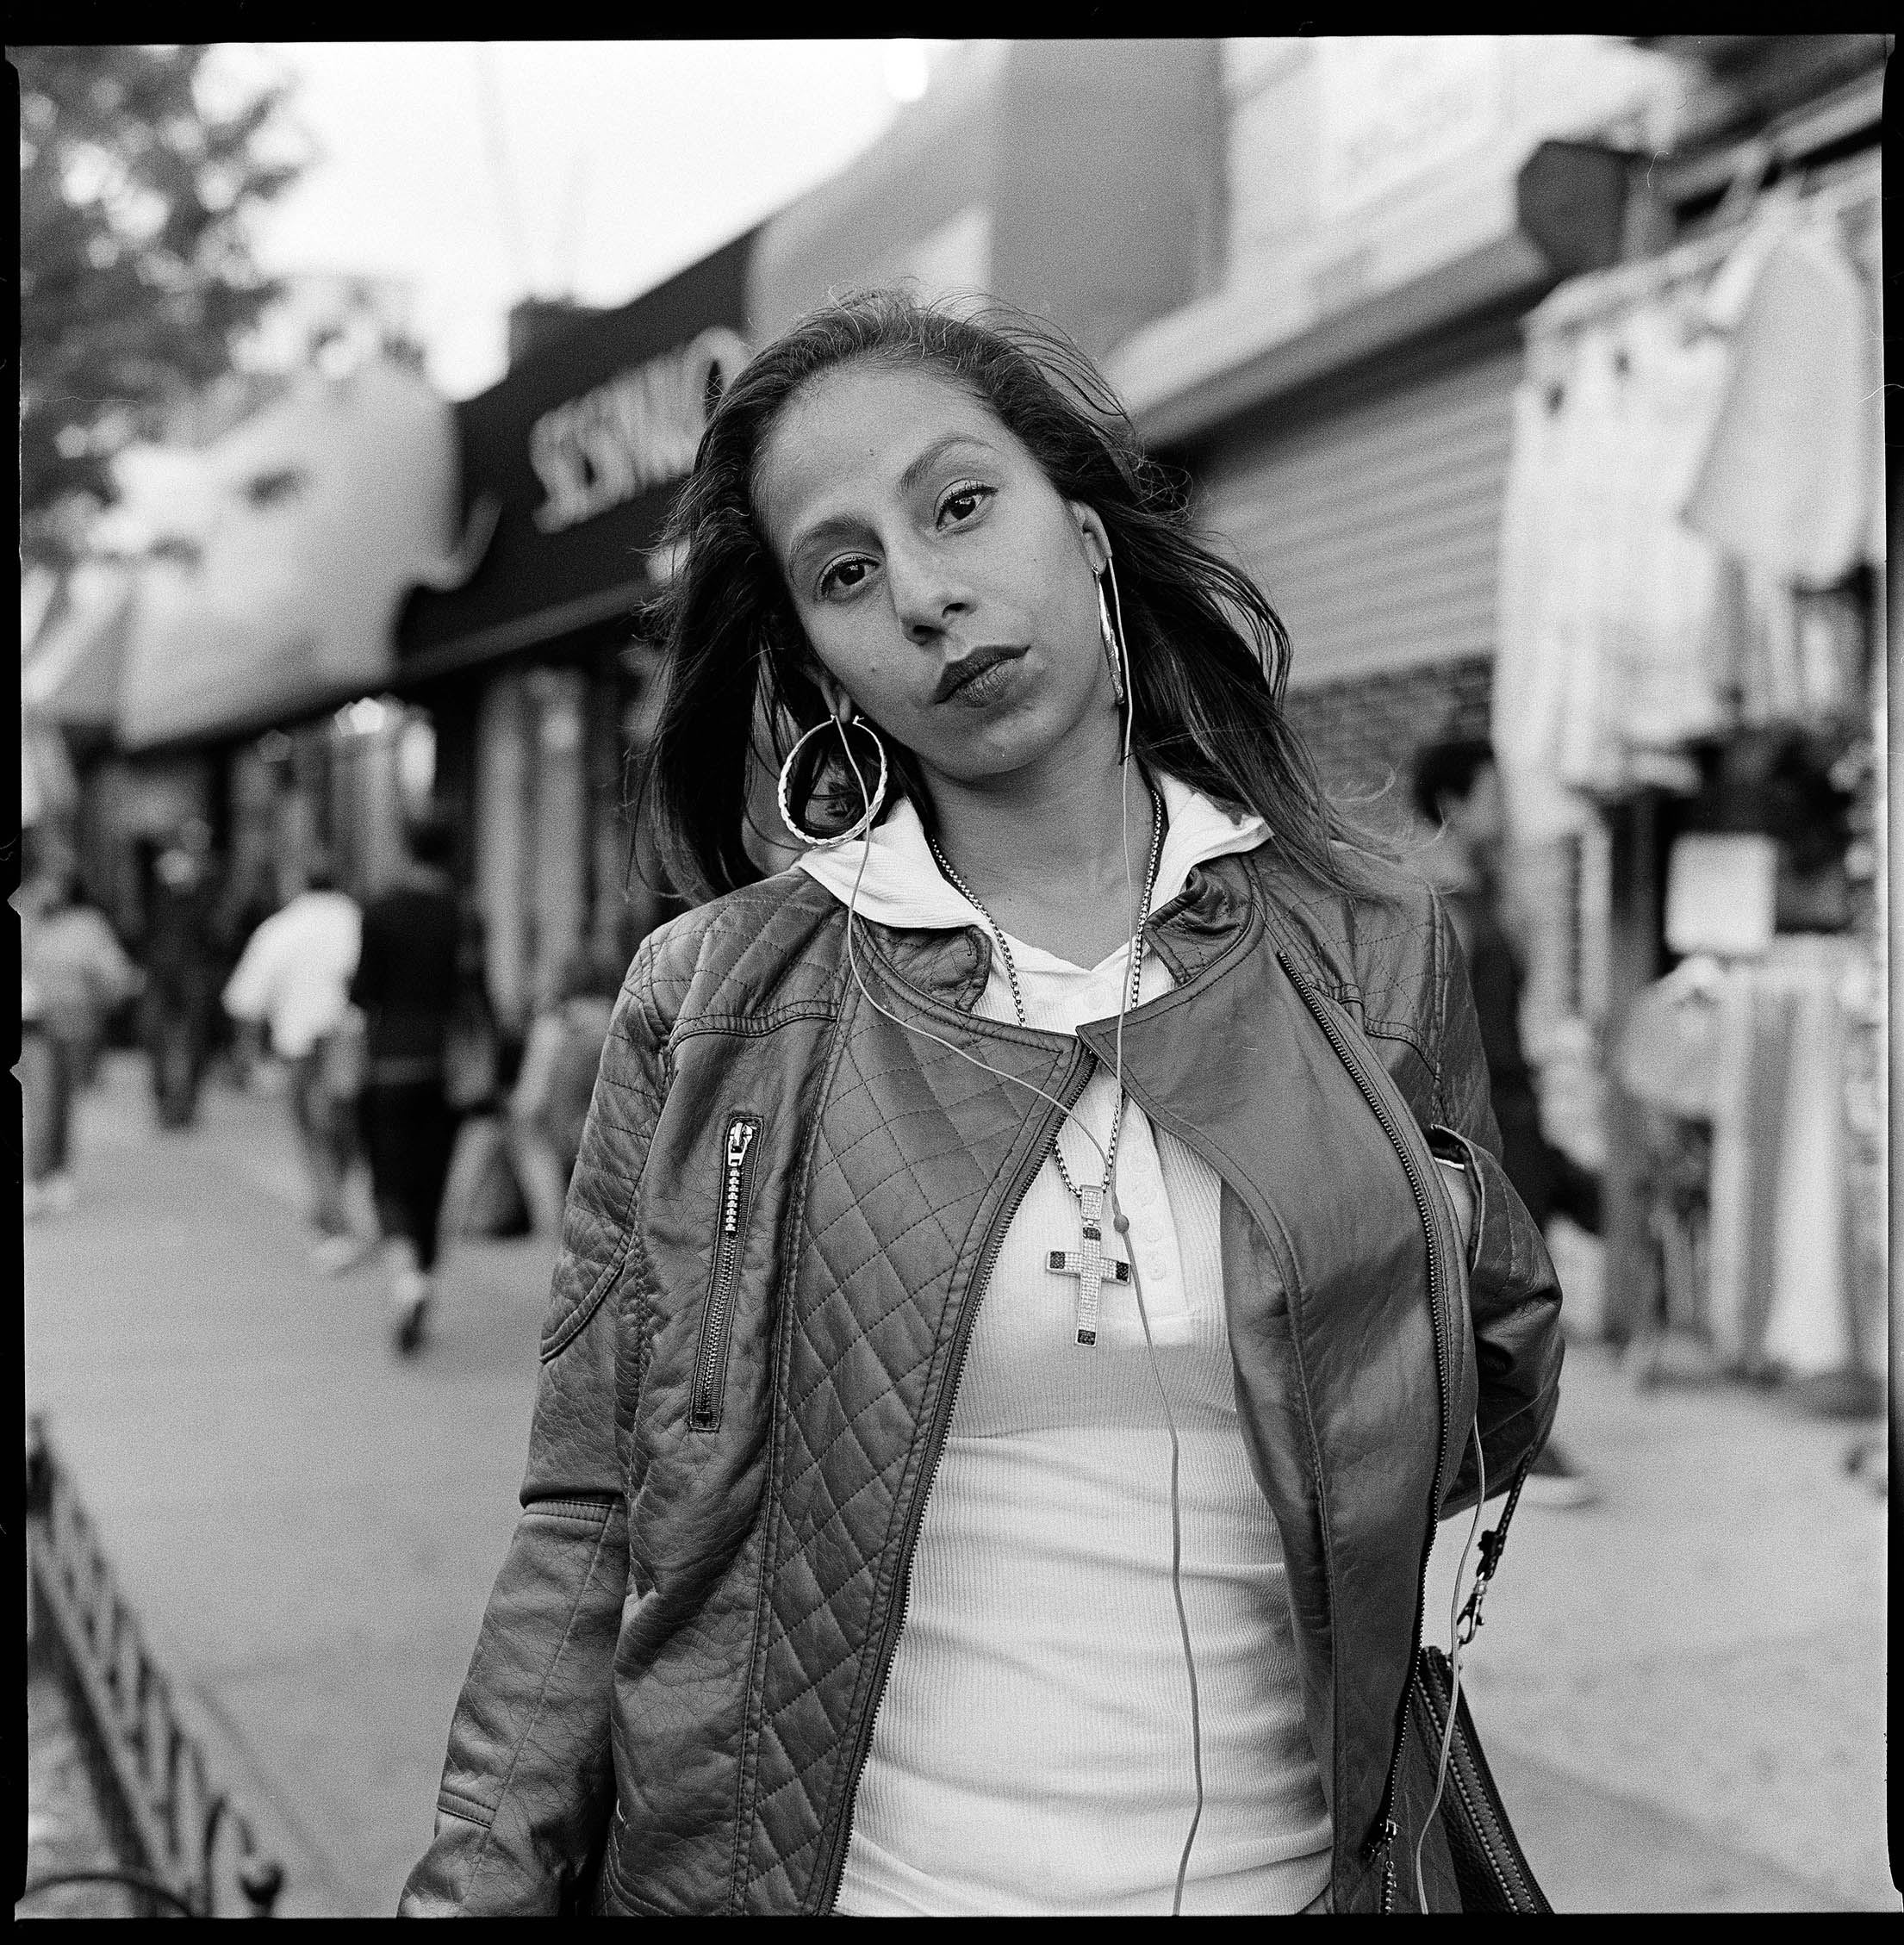 Zuly Molina, 28, on Southern Boulevard neat Hunts Point in the Bronx. After surviving domestic violence herself, Zuly decided to work as a resident assistant at a women's domestic violence shelter. (Edwin Torres/GroundTruth)